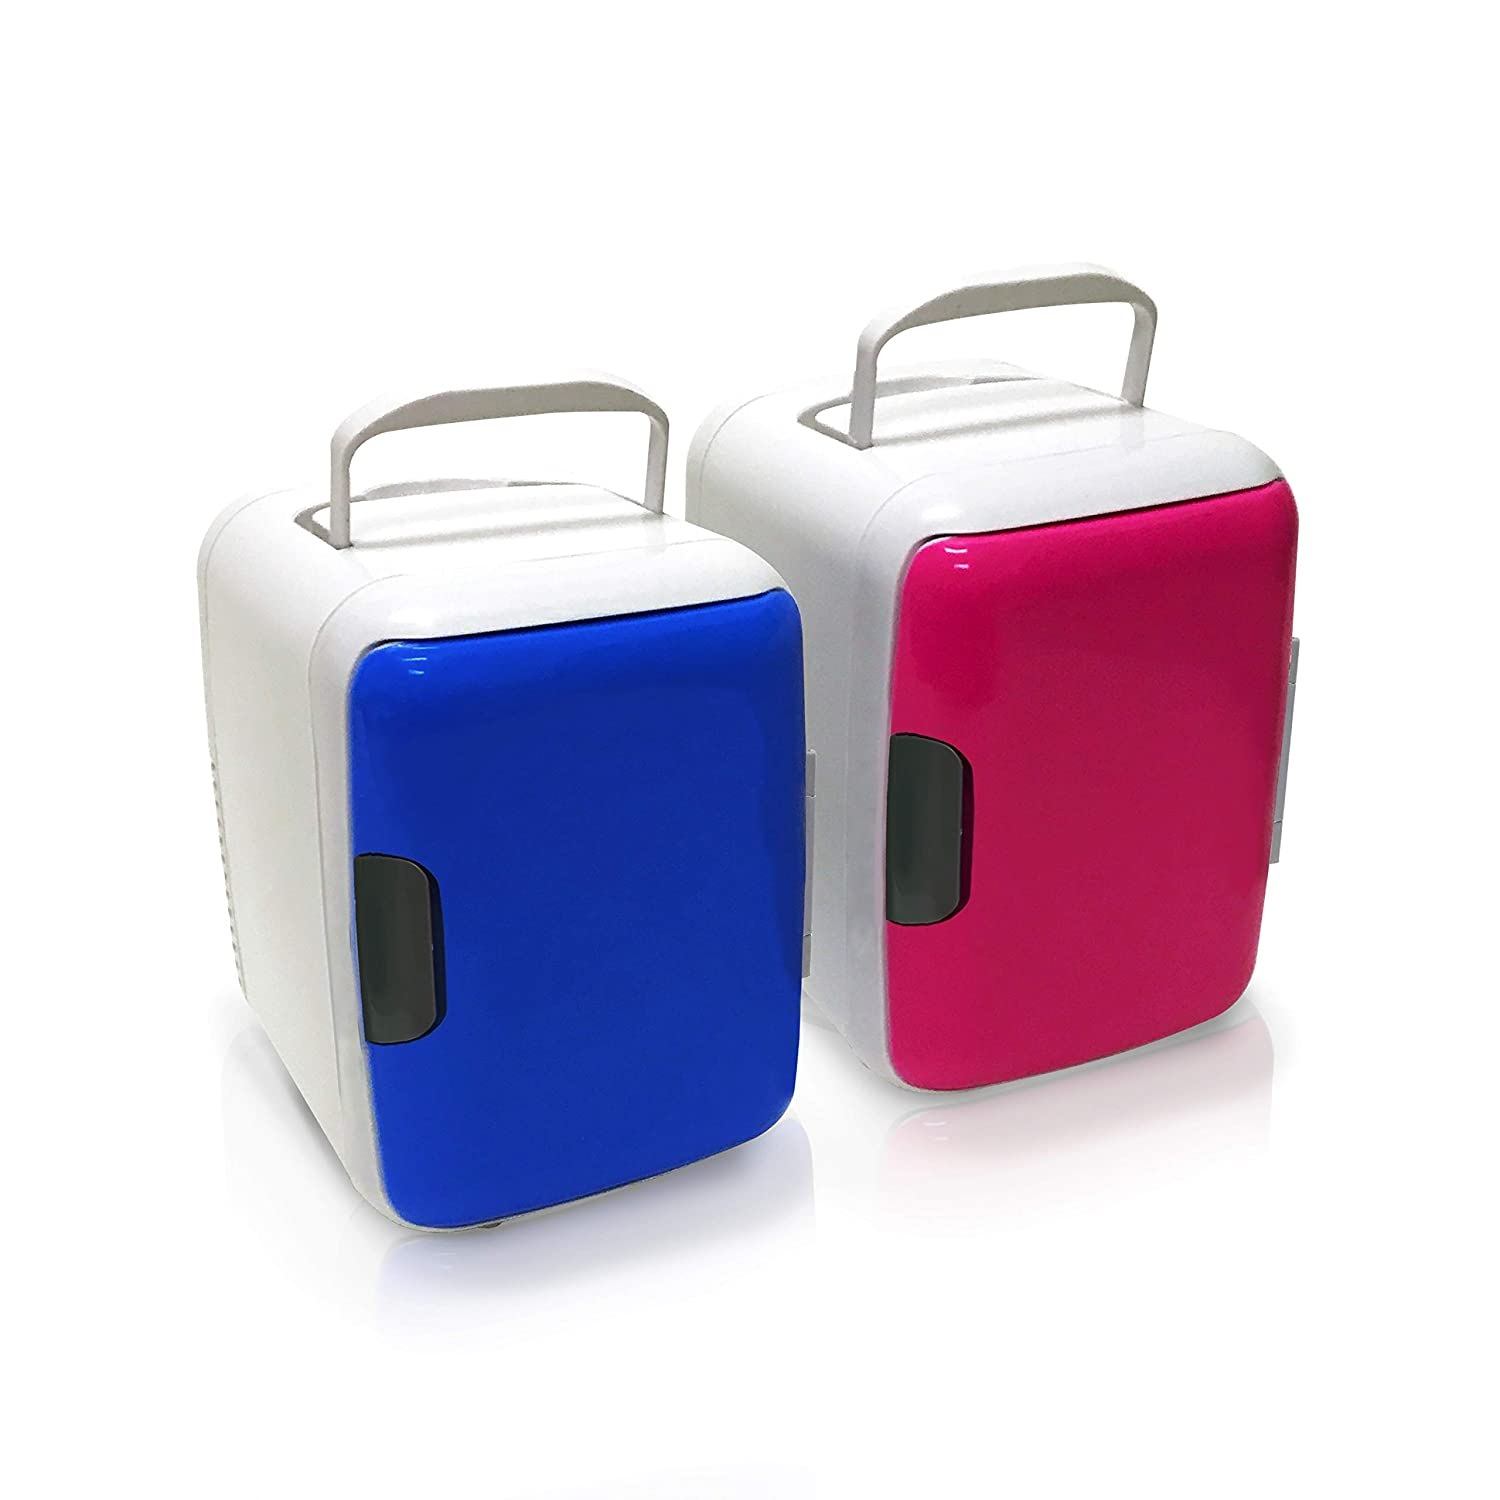 Set Of 2 Portable Mini Cooler Fridge Color Blue & Pink | Cooler For Your Car Or Home With Internal Electric Inverter For Ac-dc Use | Your Personal Small Refrigerator For Cans Comes With 12v Cigar Powe